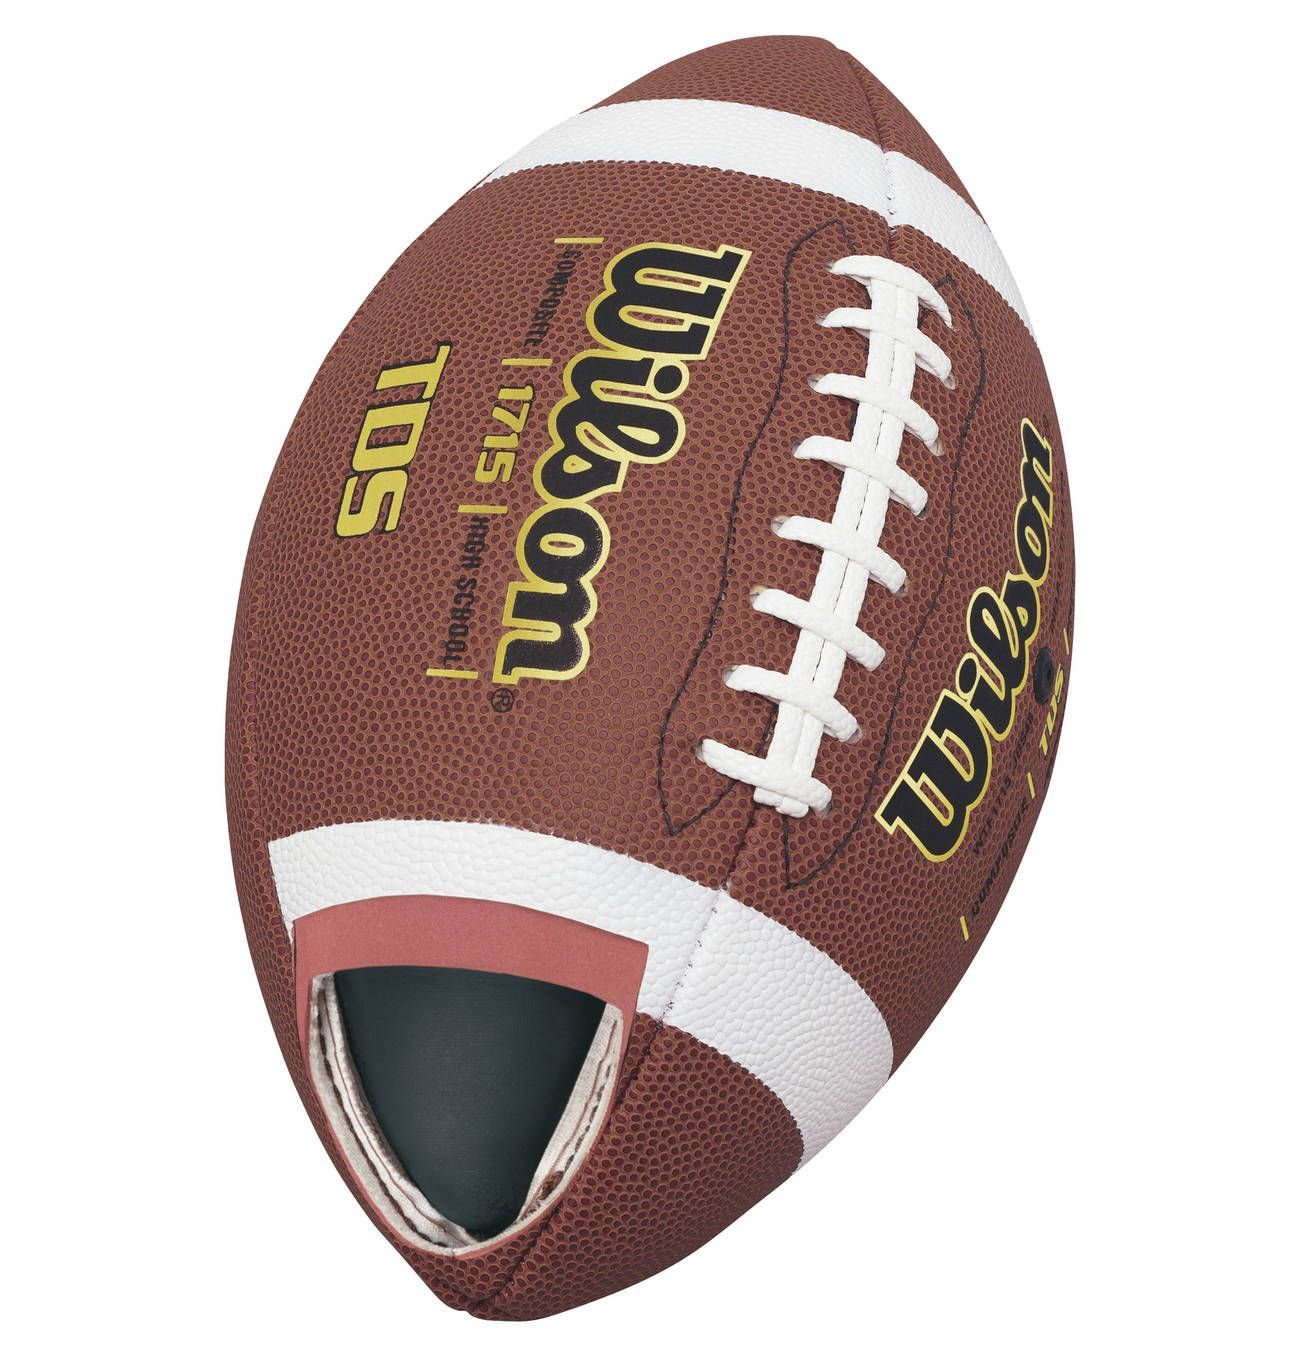 Wilson American Football Traditional Composite Game Ball Galeria Kaufhof American Ame In 2020 Football American Football American Football League